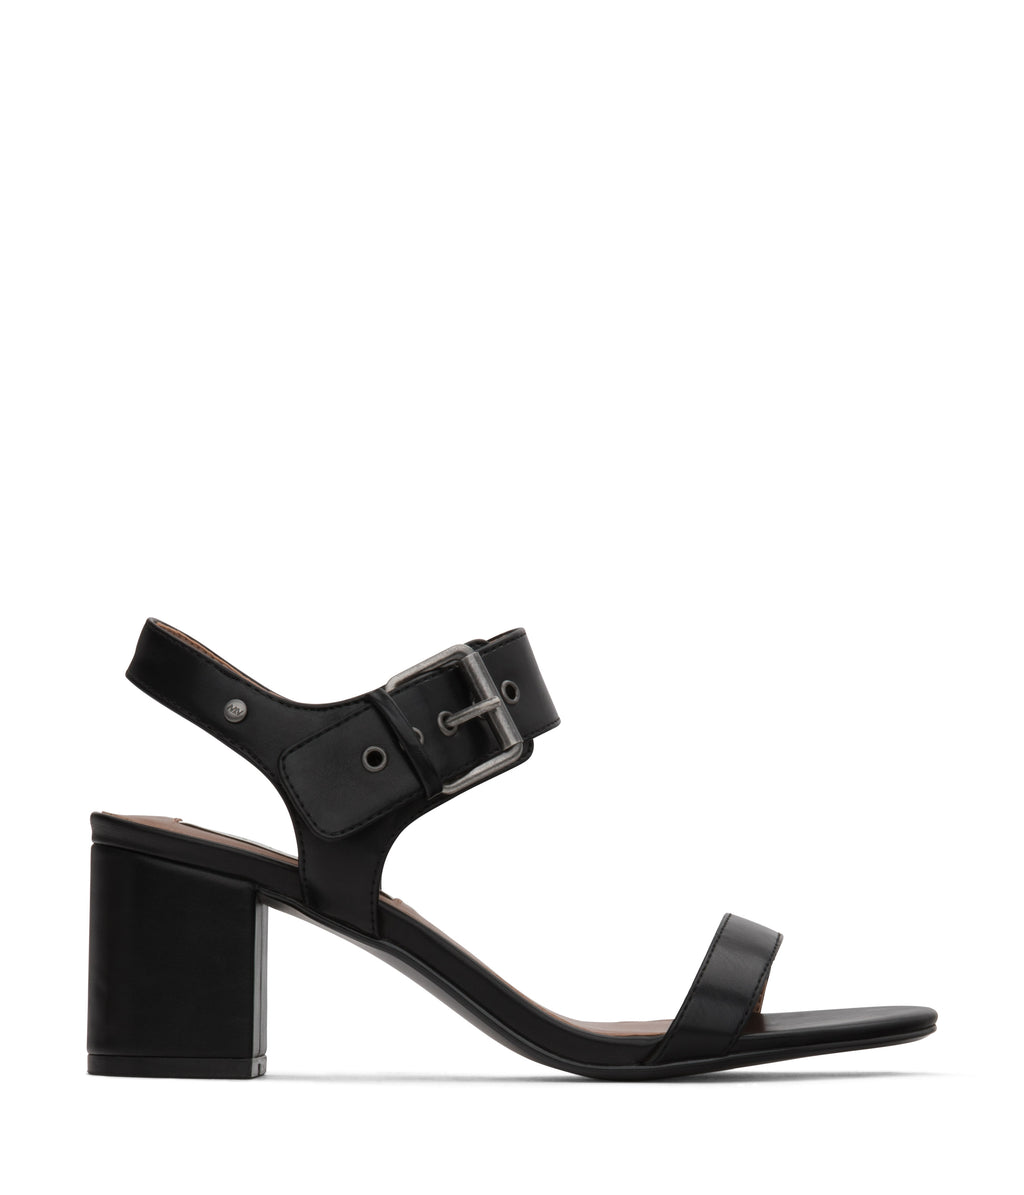 Matt & Nat ELYSA High Heel Sandals